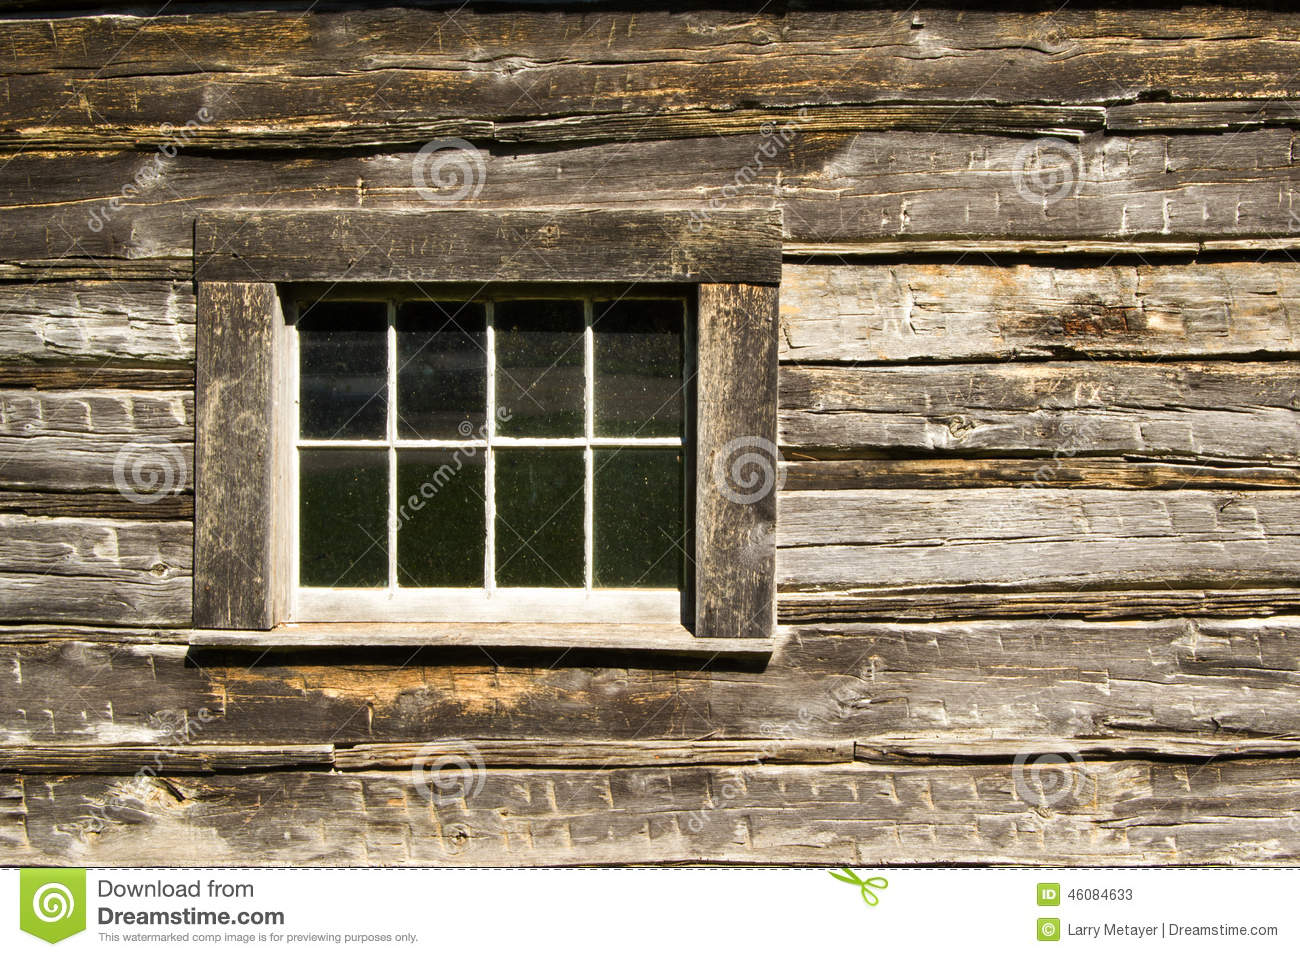 Log cabin window stock image image of history window 46084633 for Log cabin window